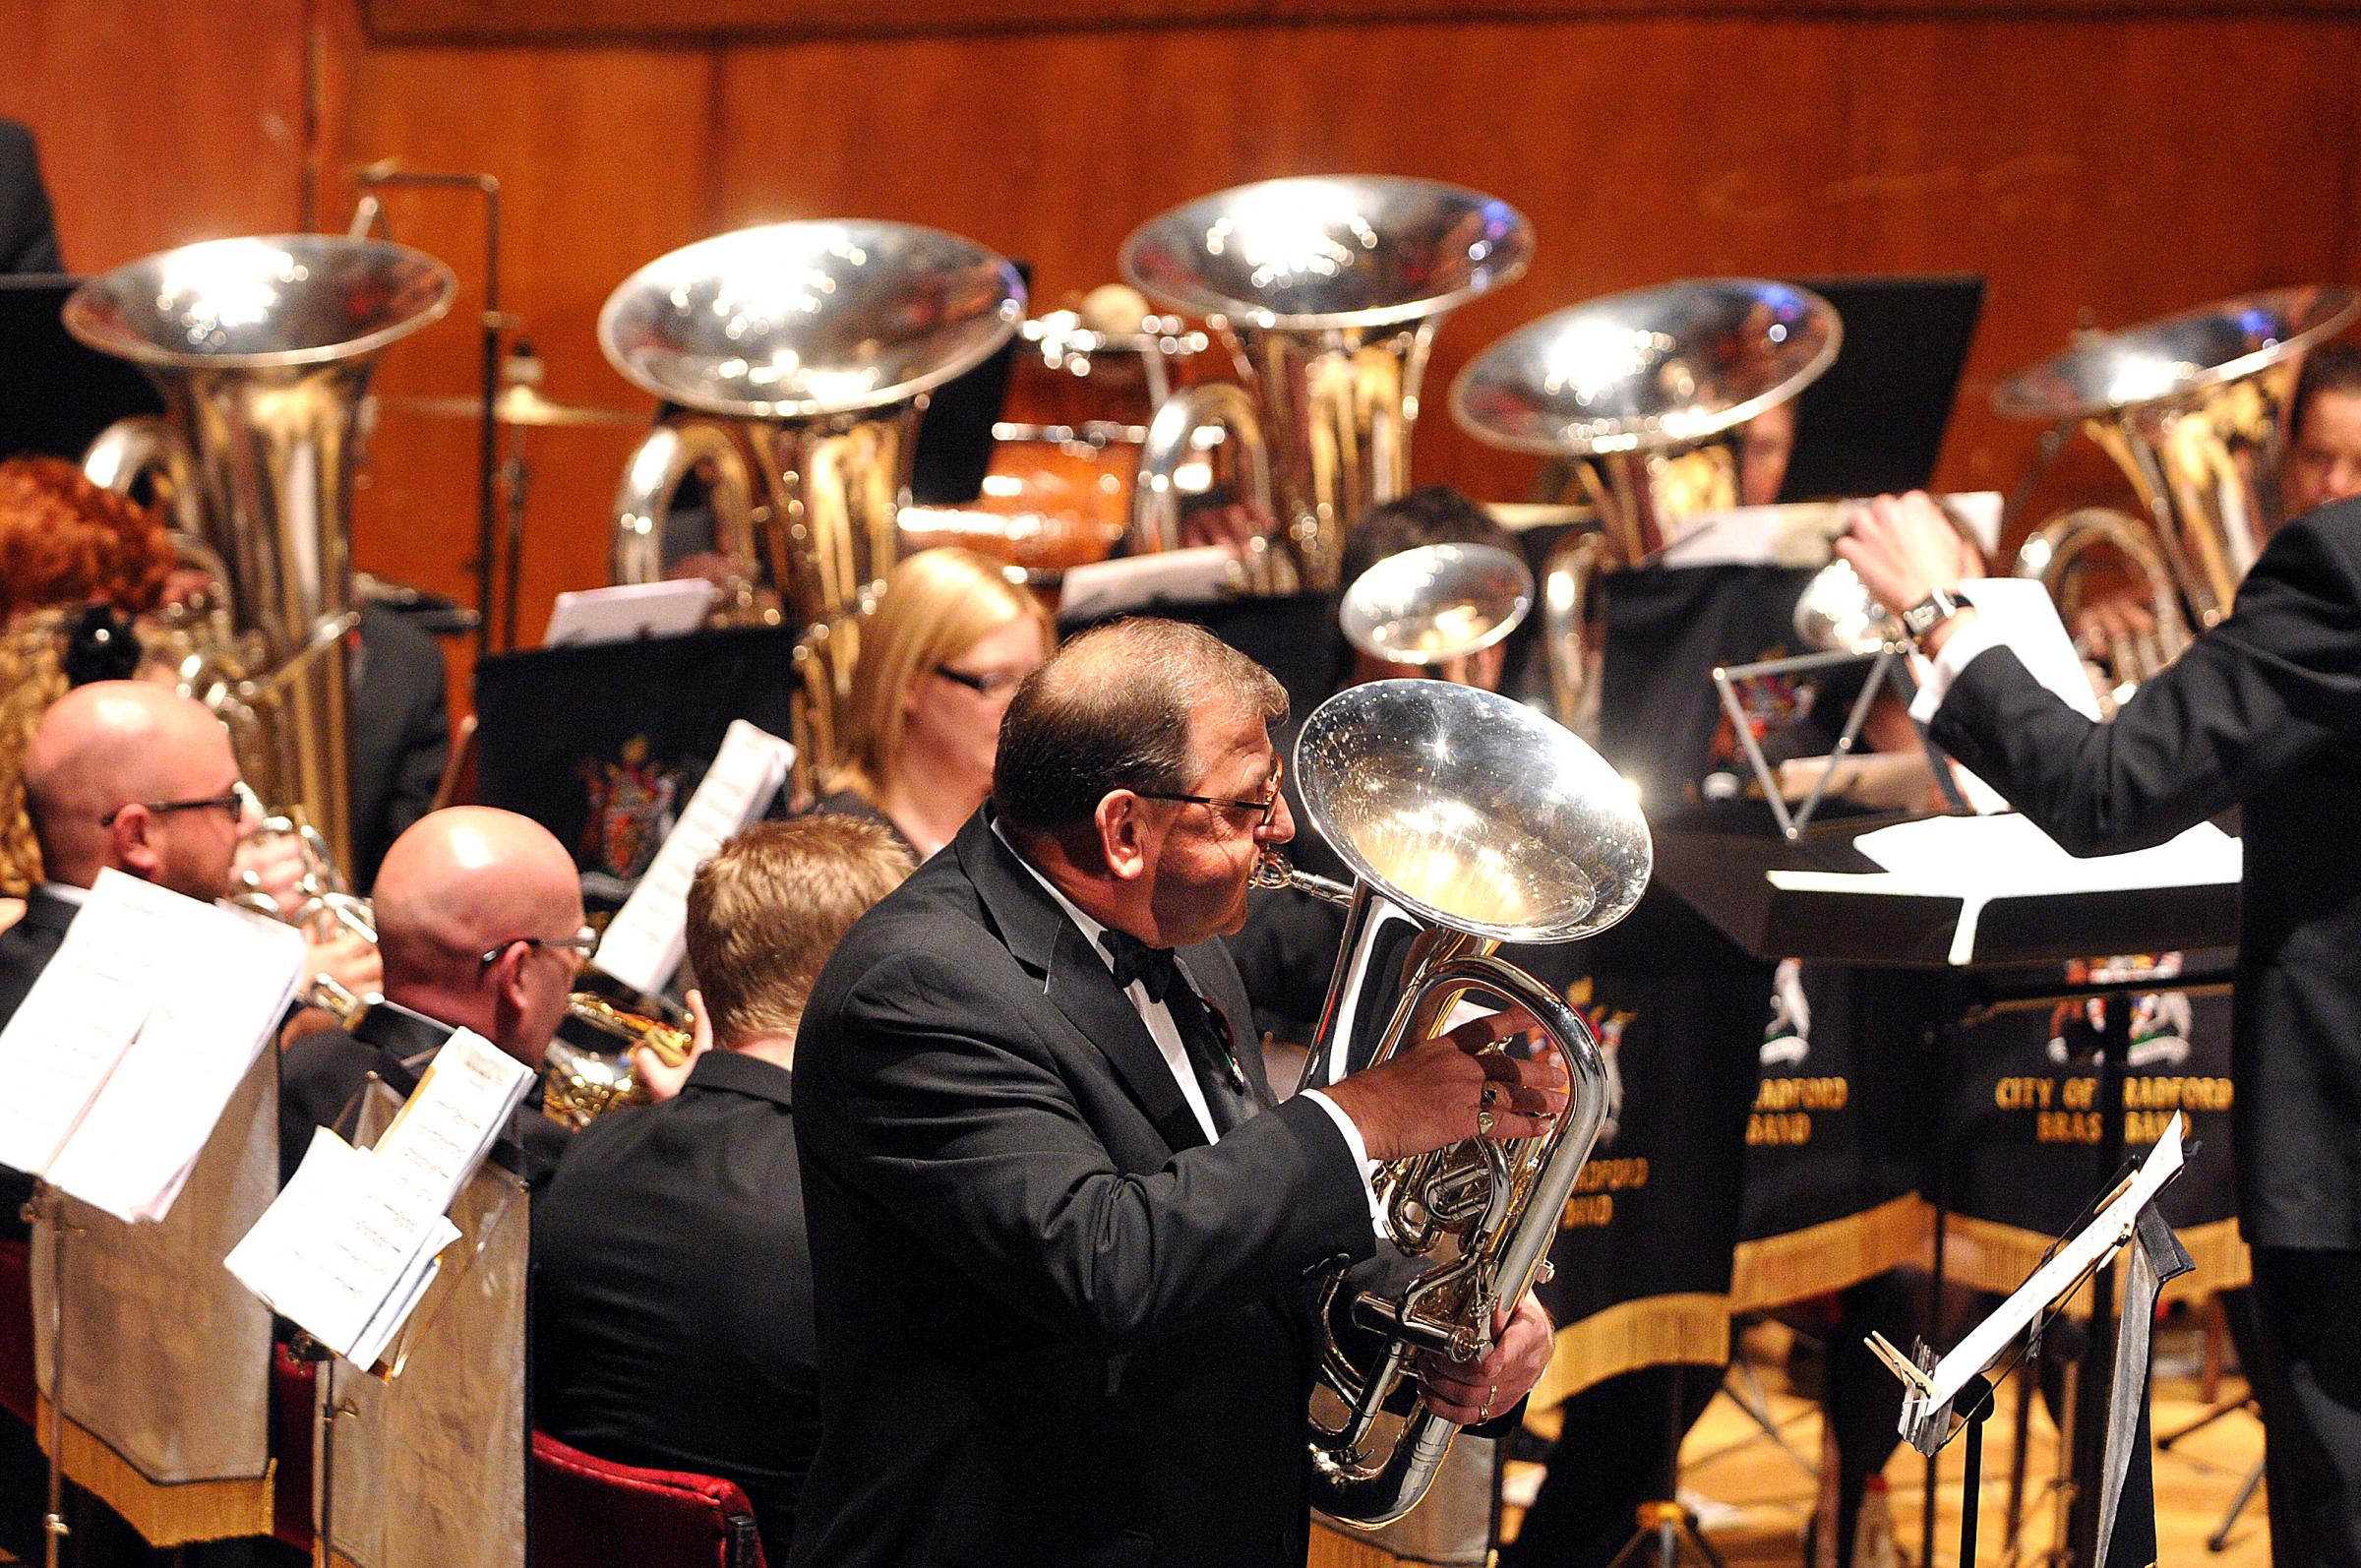 The City of Bradford Brass Band will be performing at Ilkley Parish Council's Civic Concert